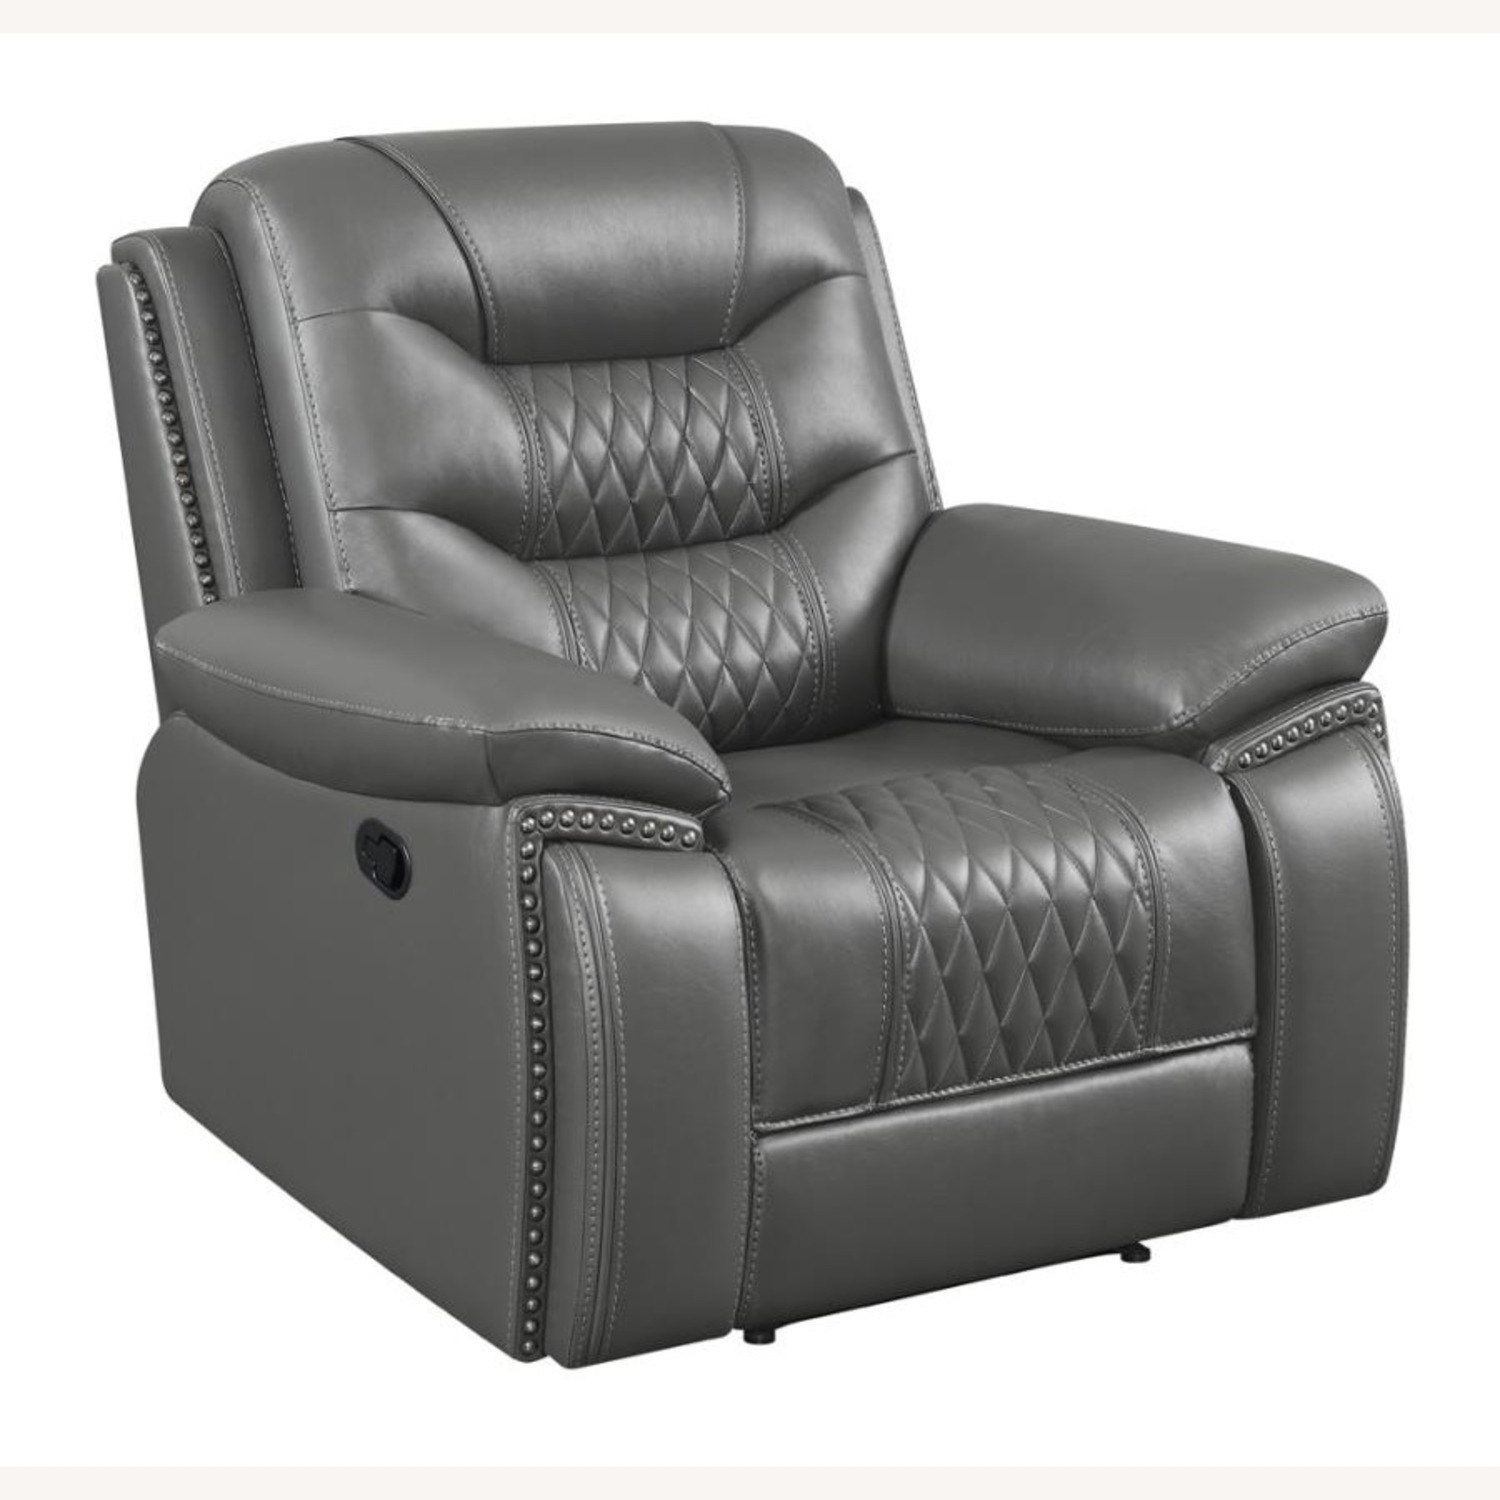 Recliner In Charcoal Performance Leatherette - image-0